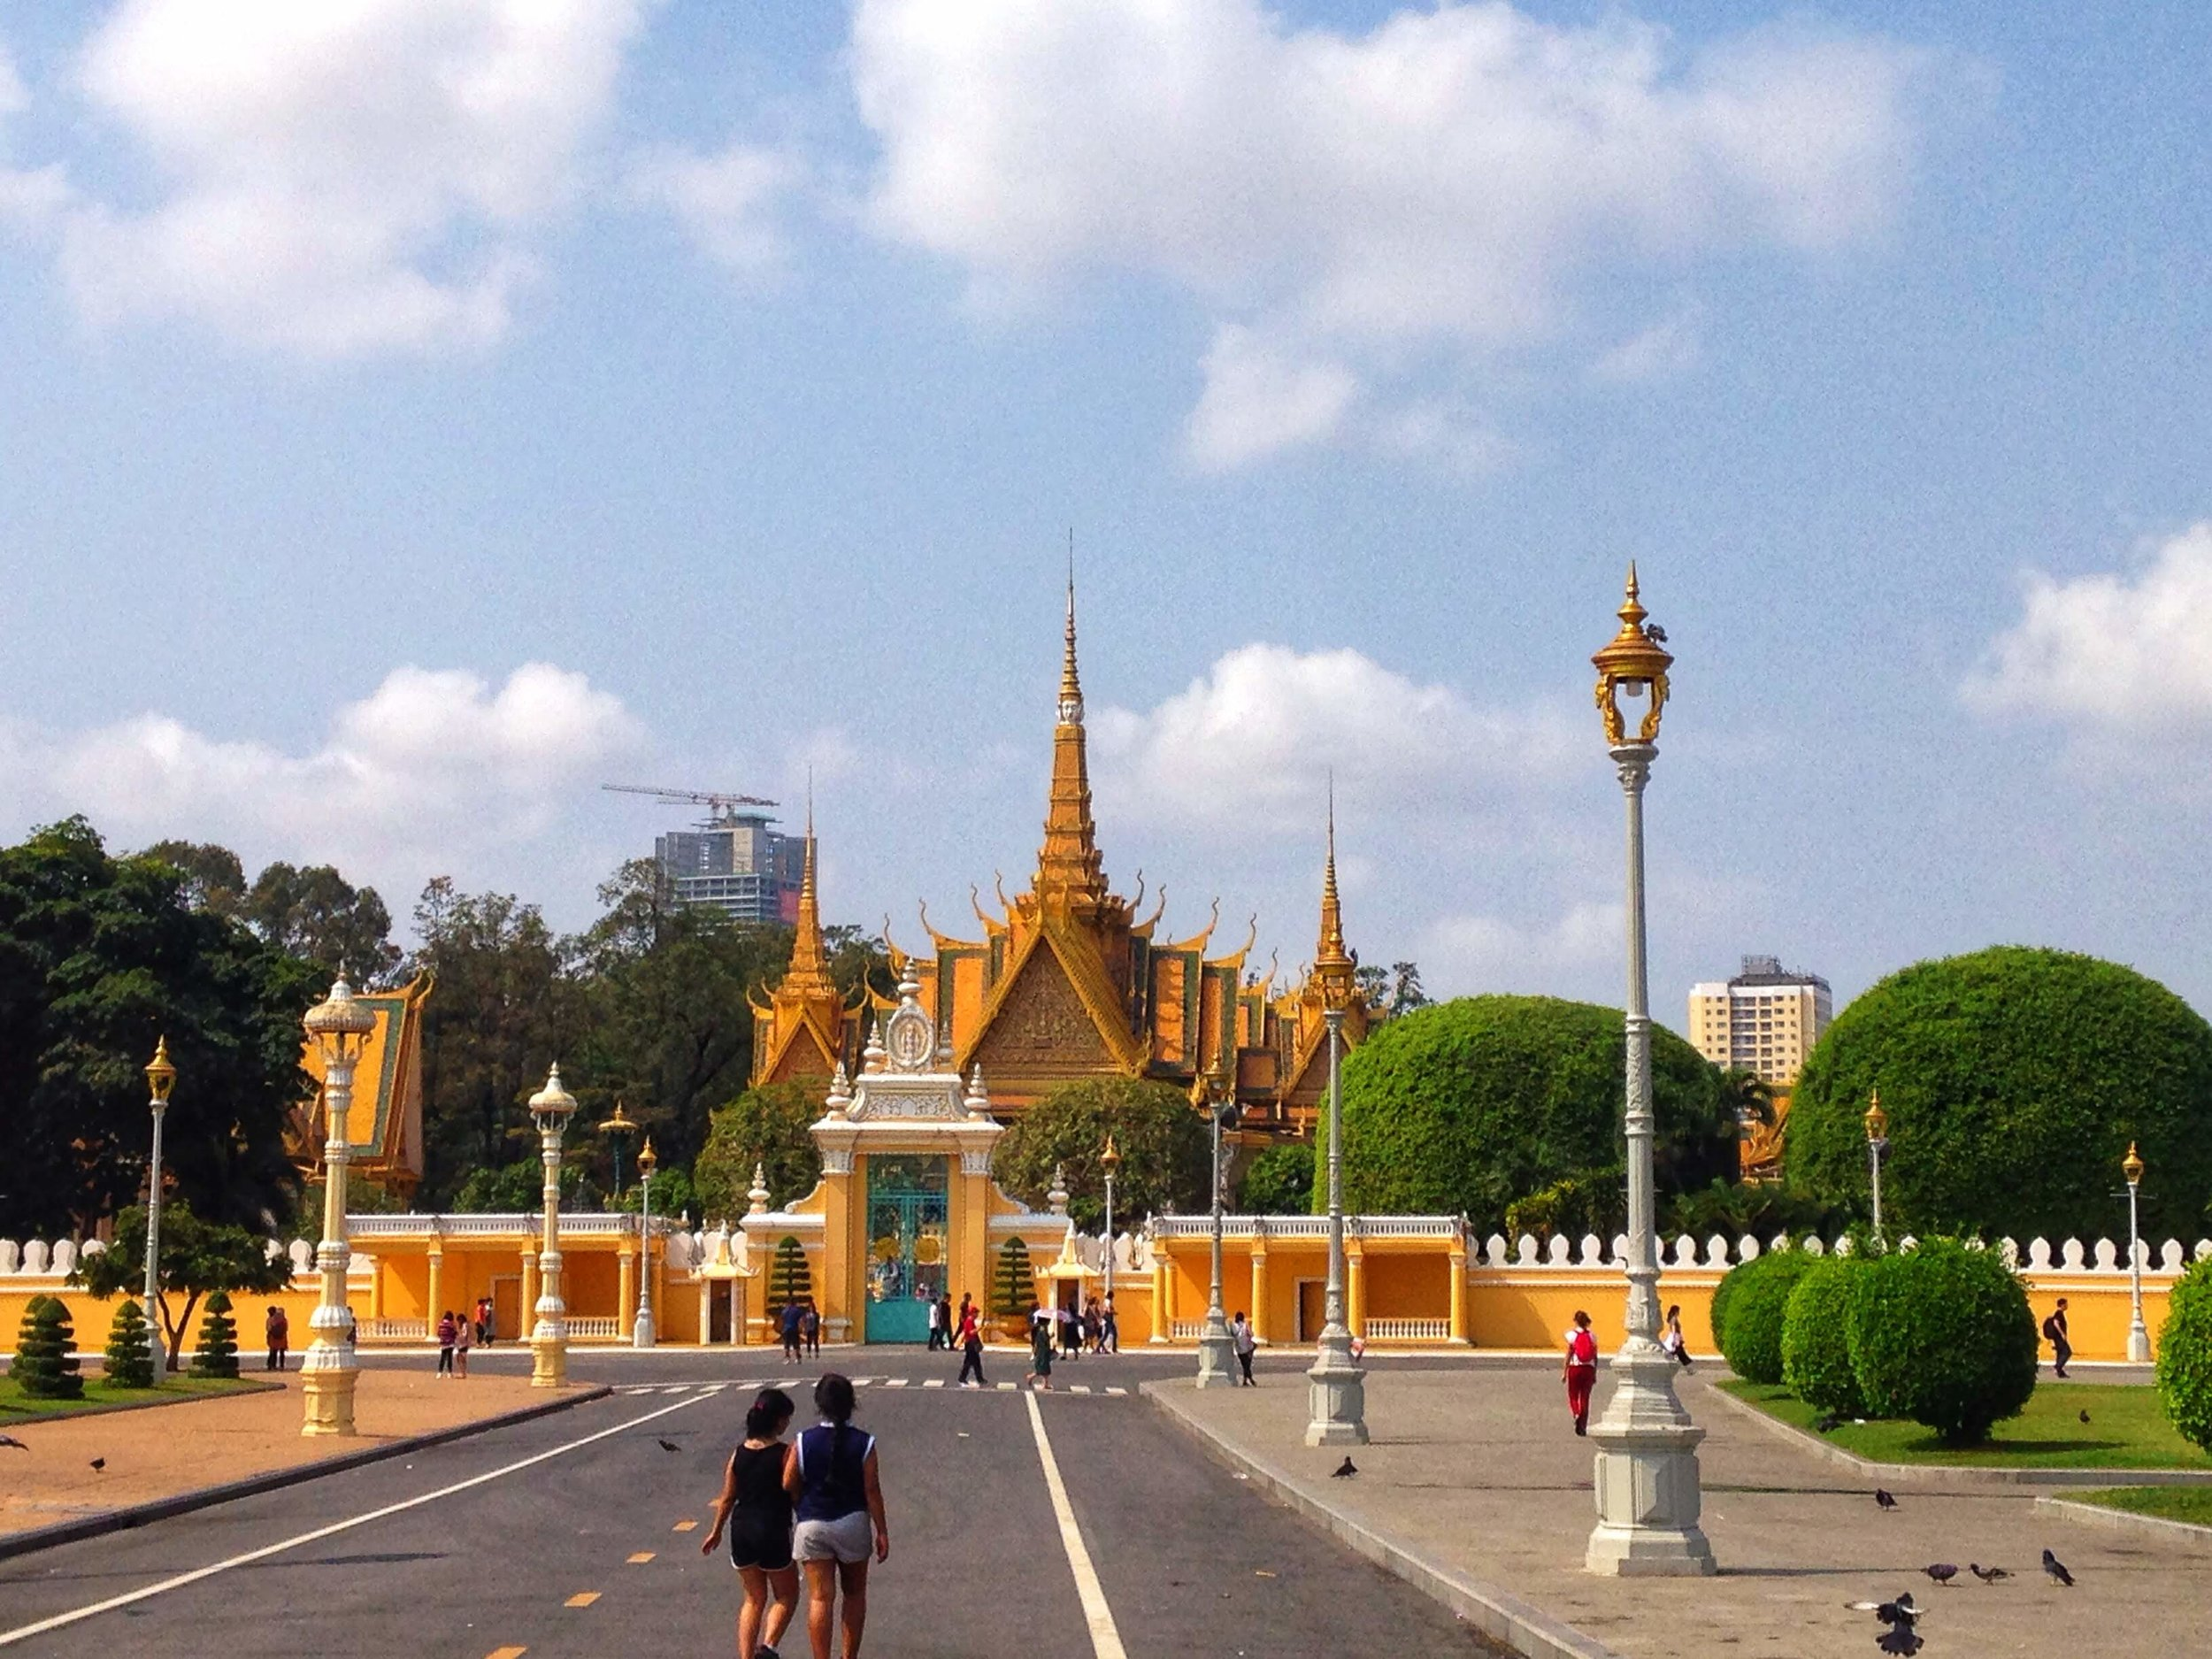 The gates of the Royal Palace in Phnom Penh, Cambodia.